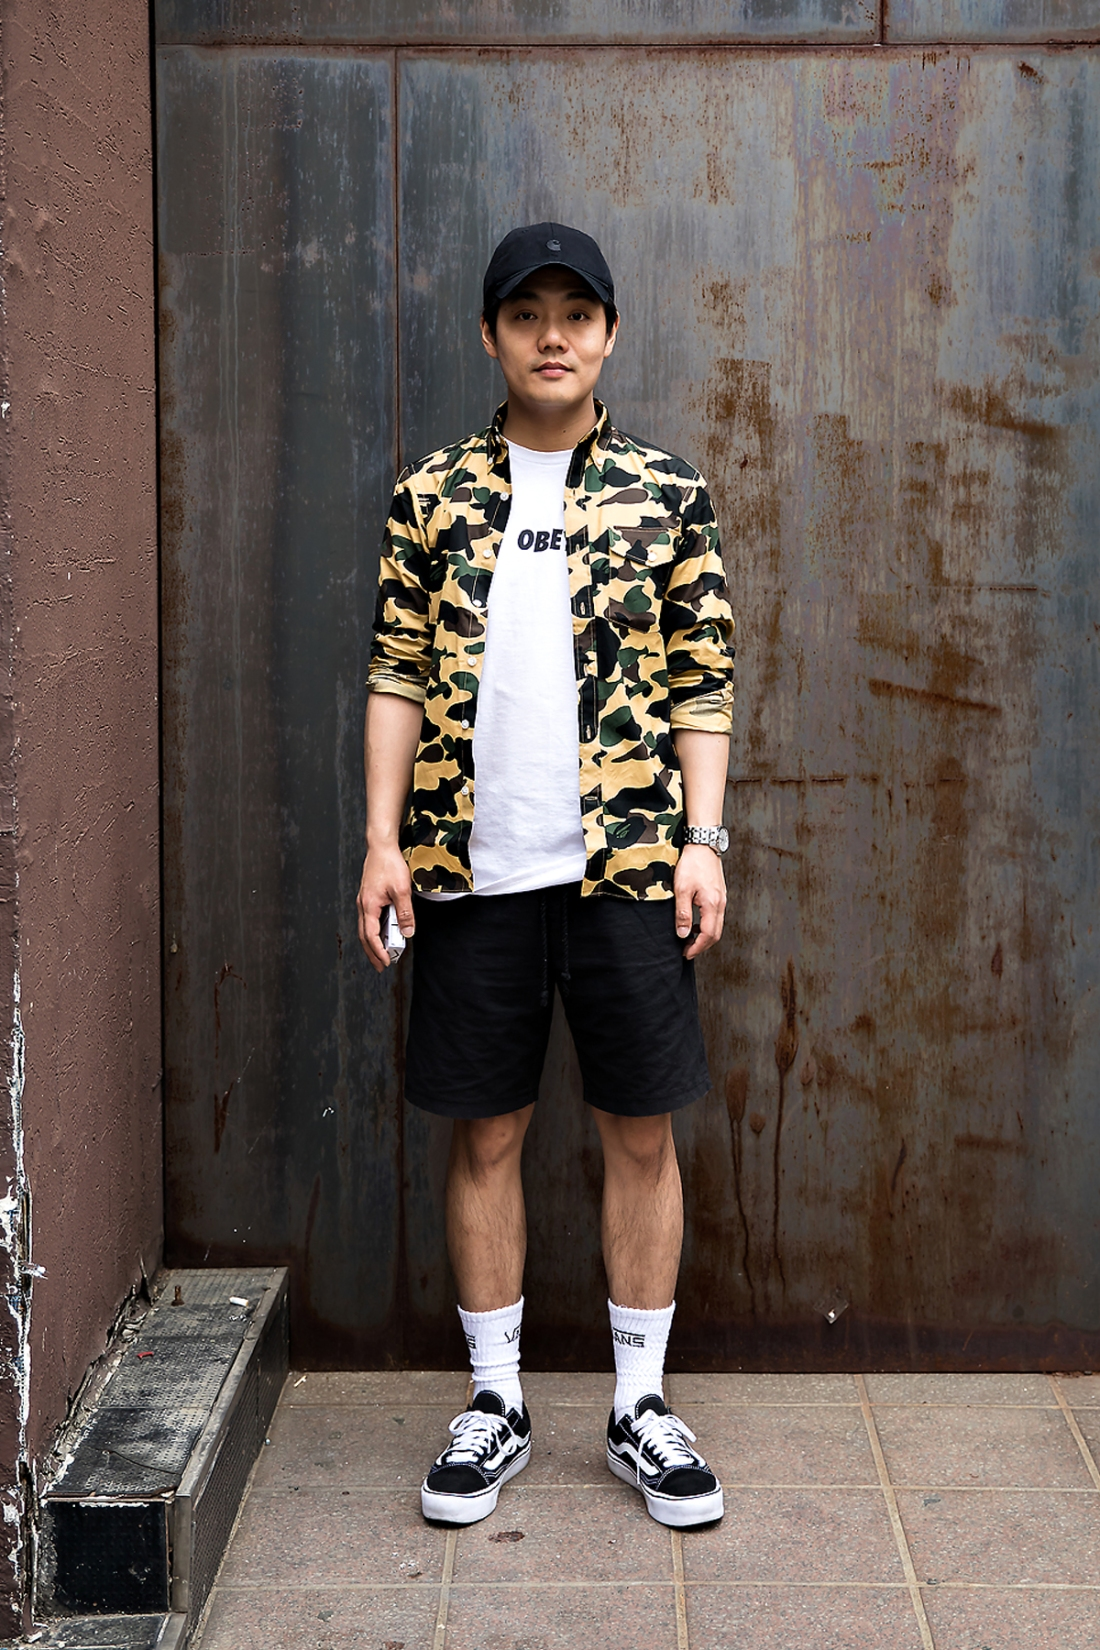 Lee Seungyong, Street Fashion 2017 in Seoul